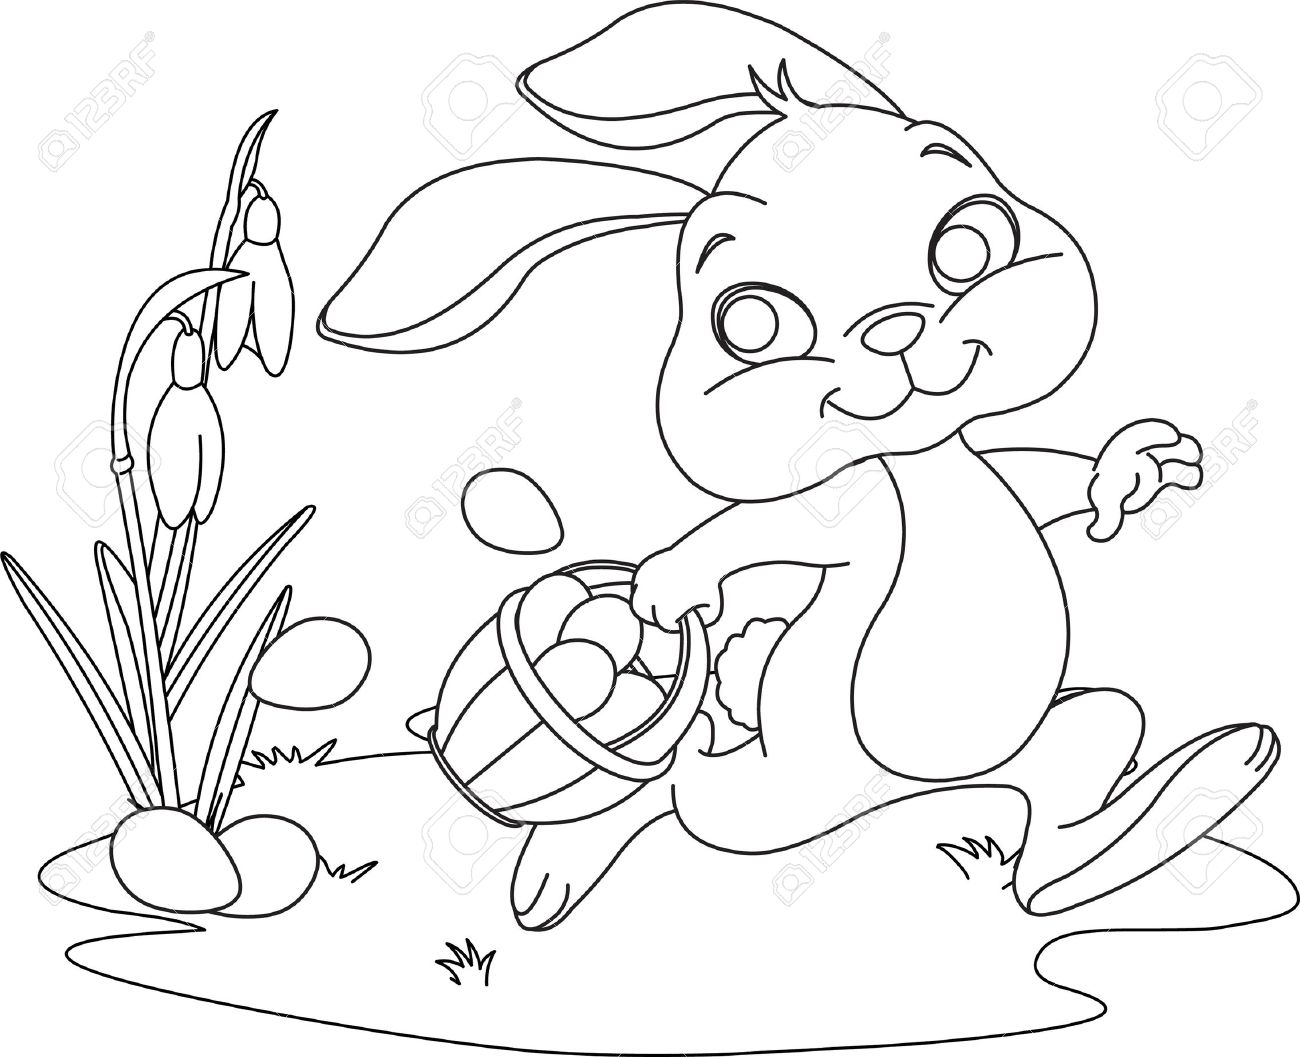 Easter bunny ears coloring pages download and print for free for Ear coloring pages